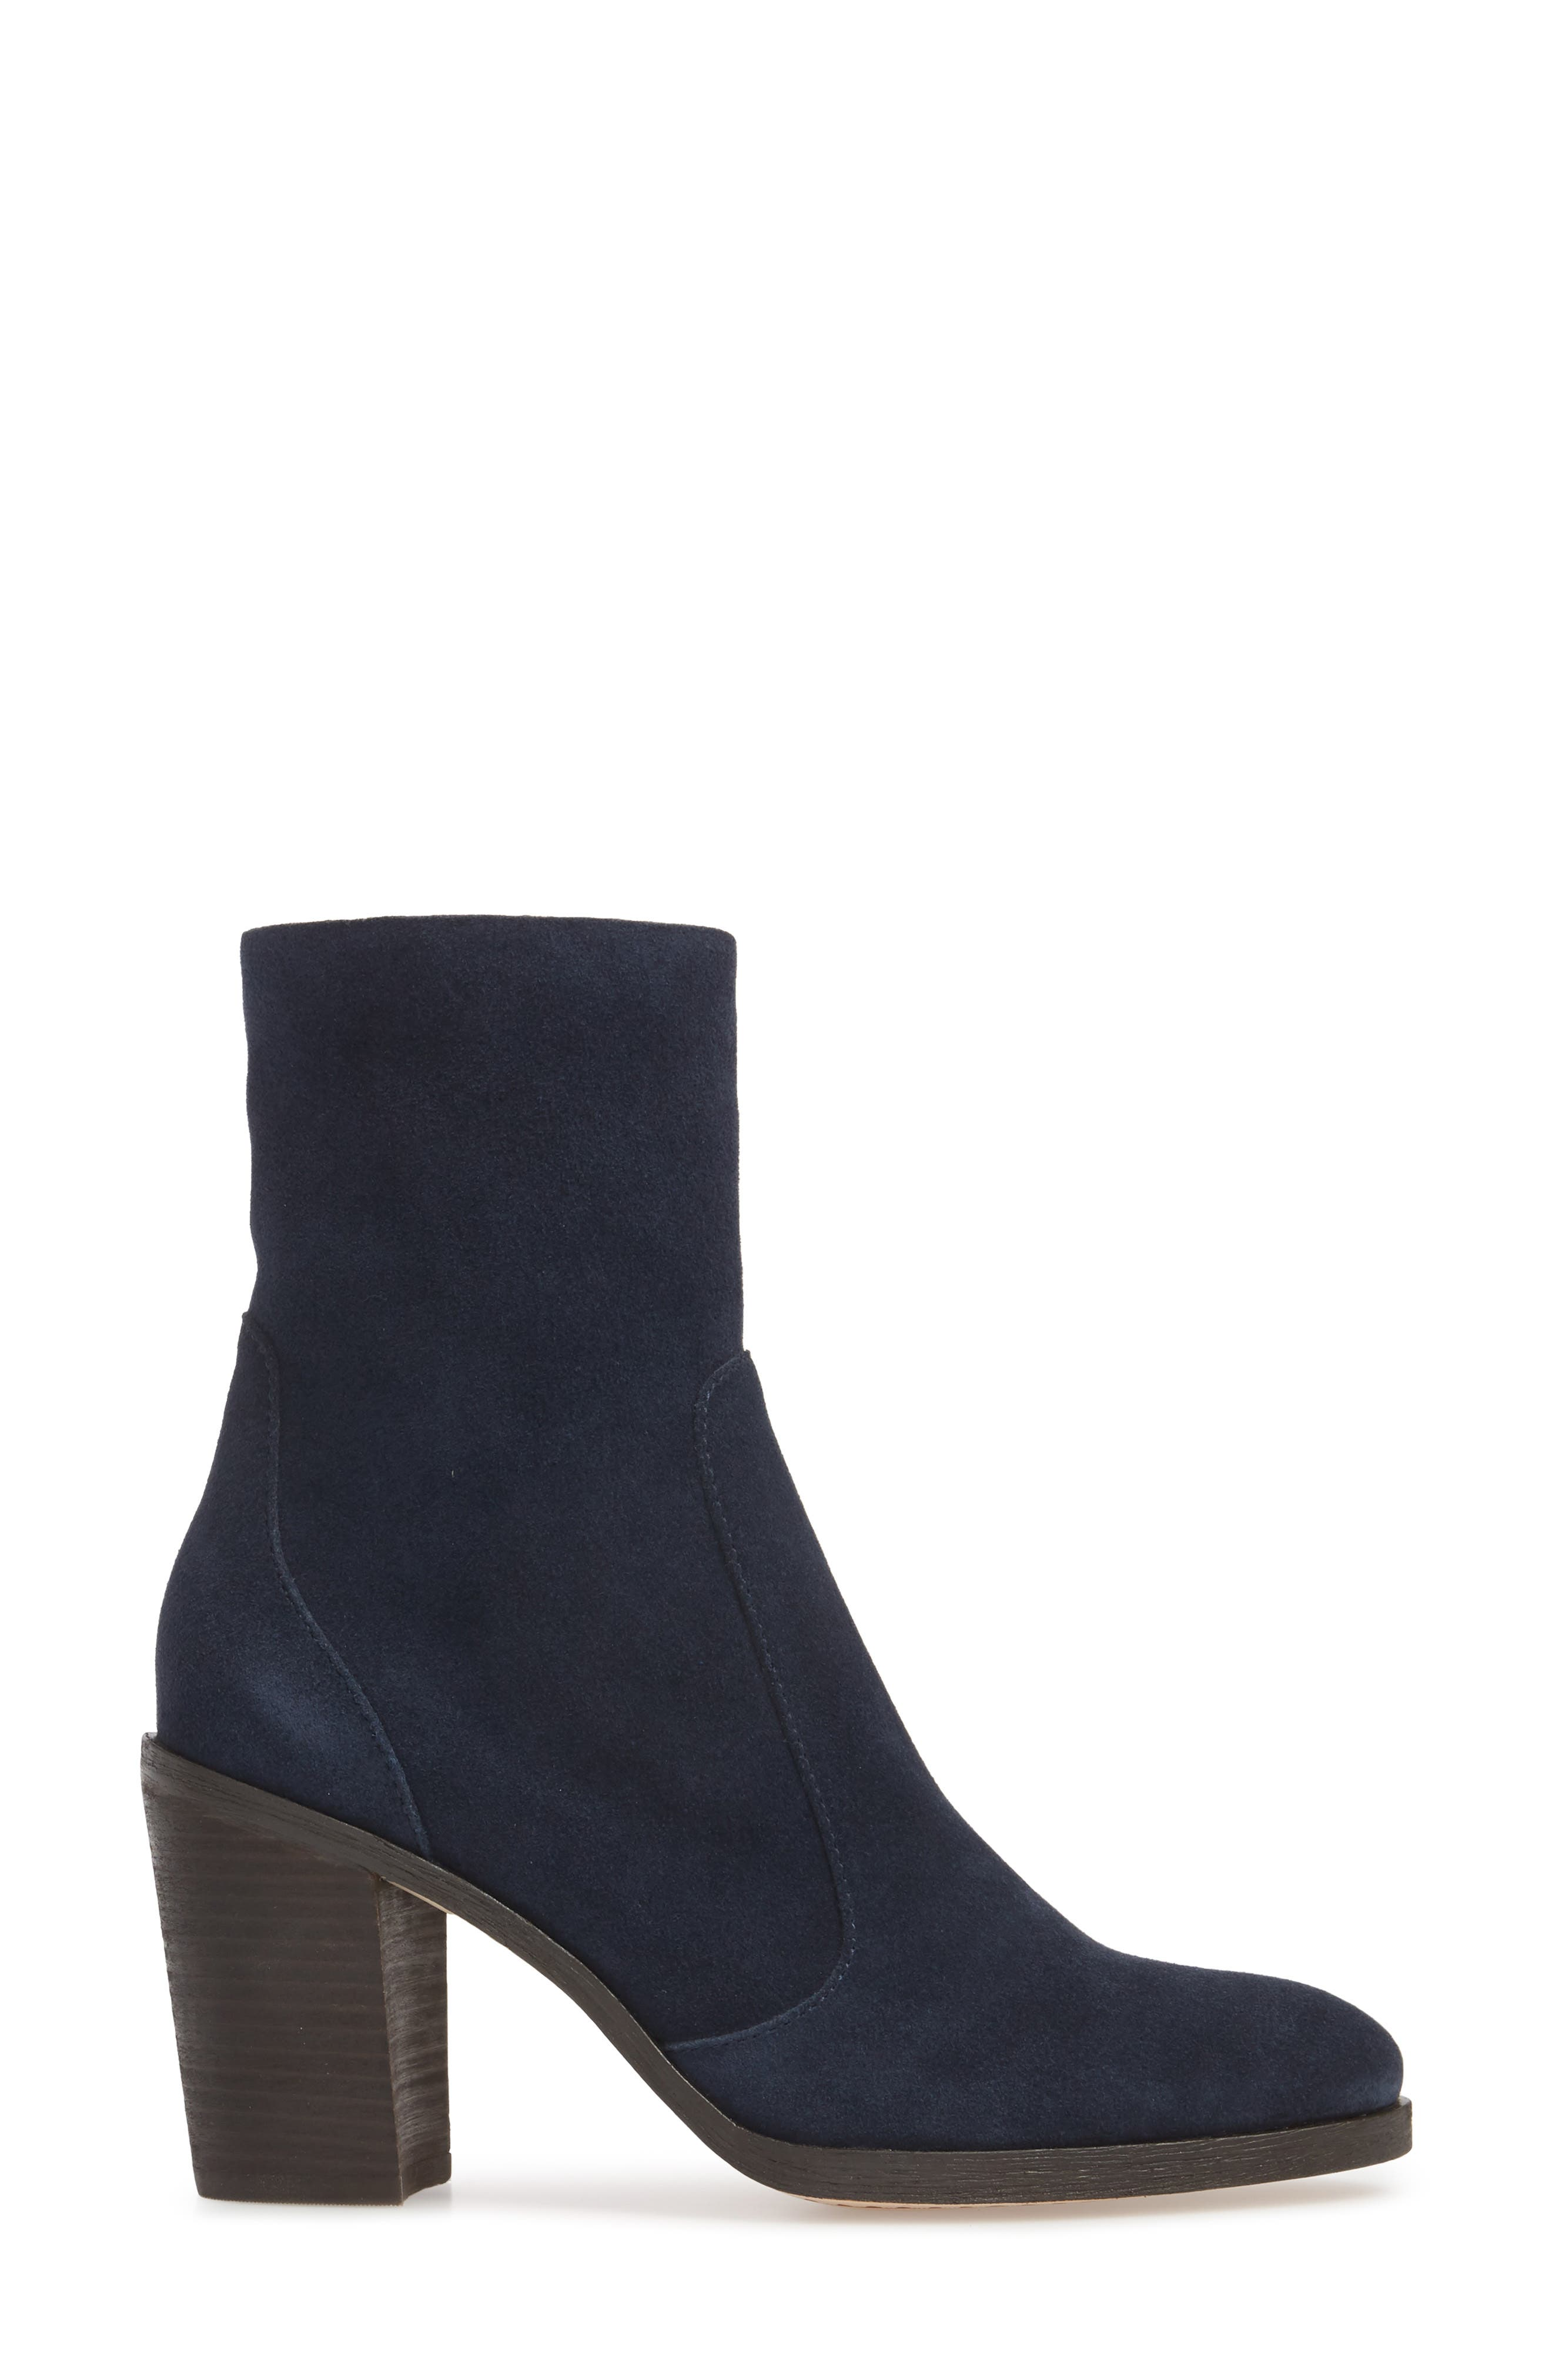 Roselyn II Almond Toe Bootie,                             Alternate thumbnail 3, color,                             Navy Suede